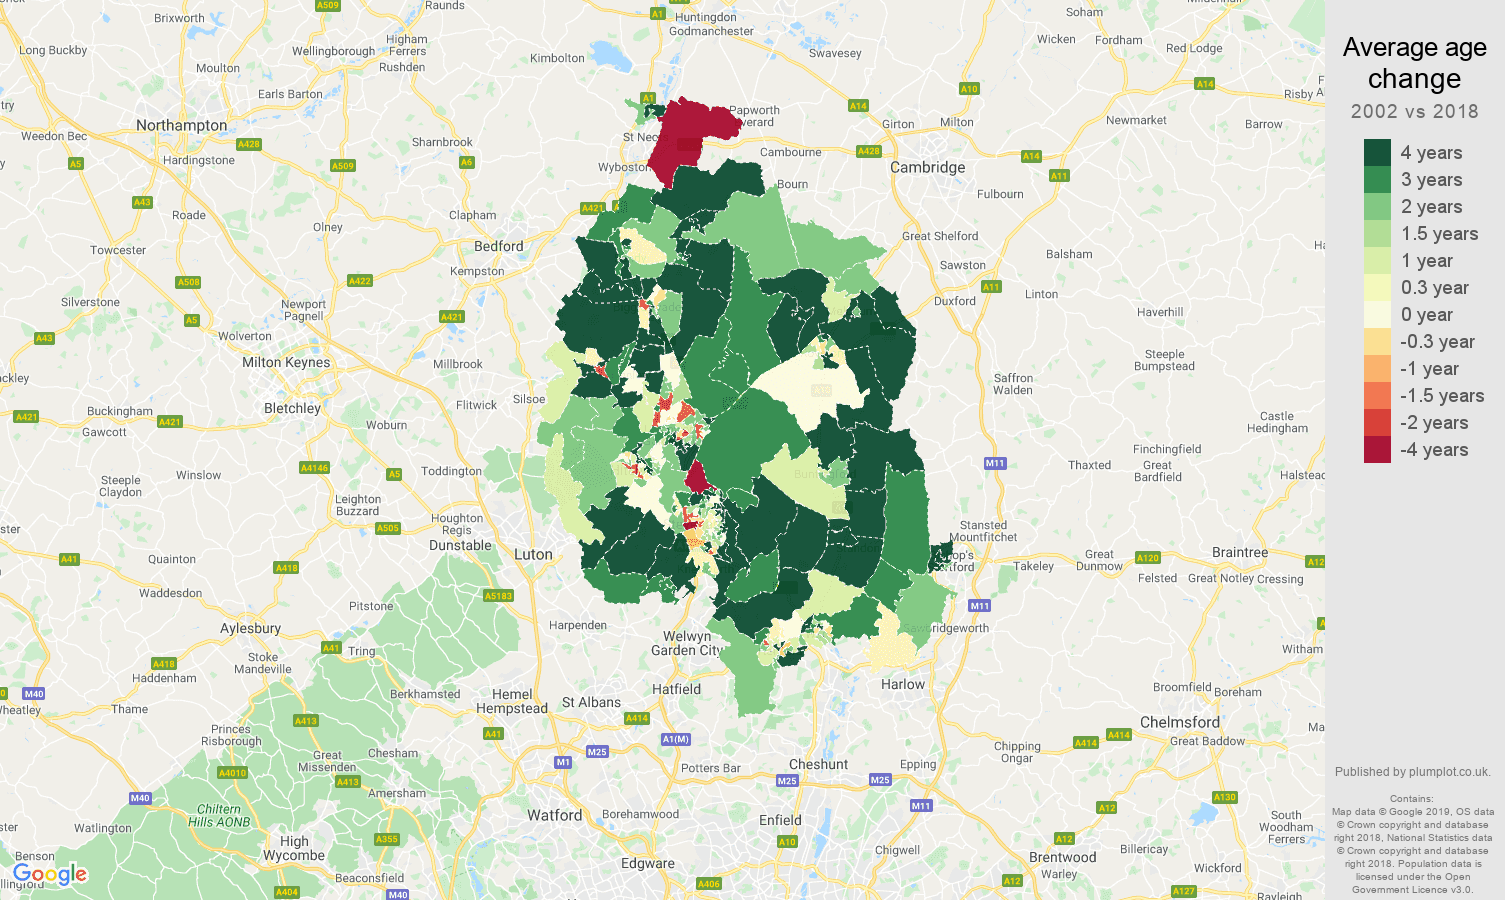 Stevenage average age change map